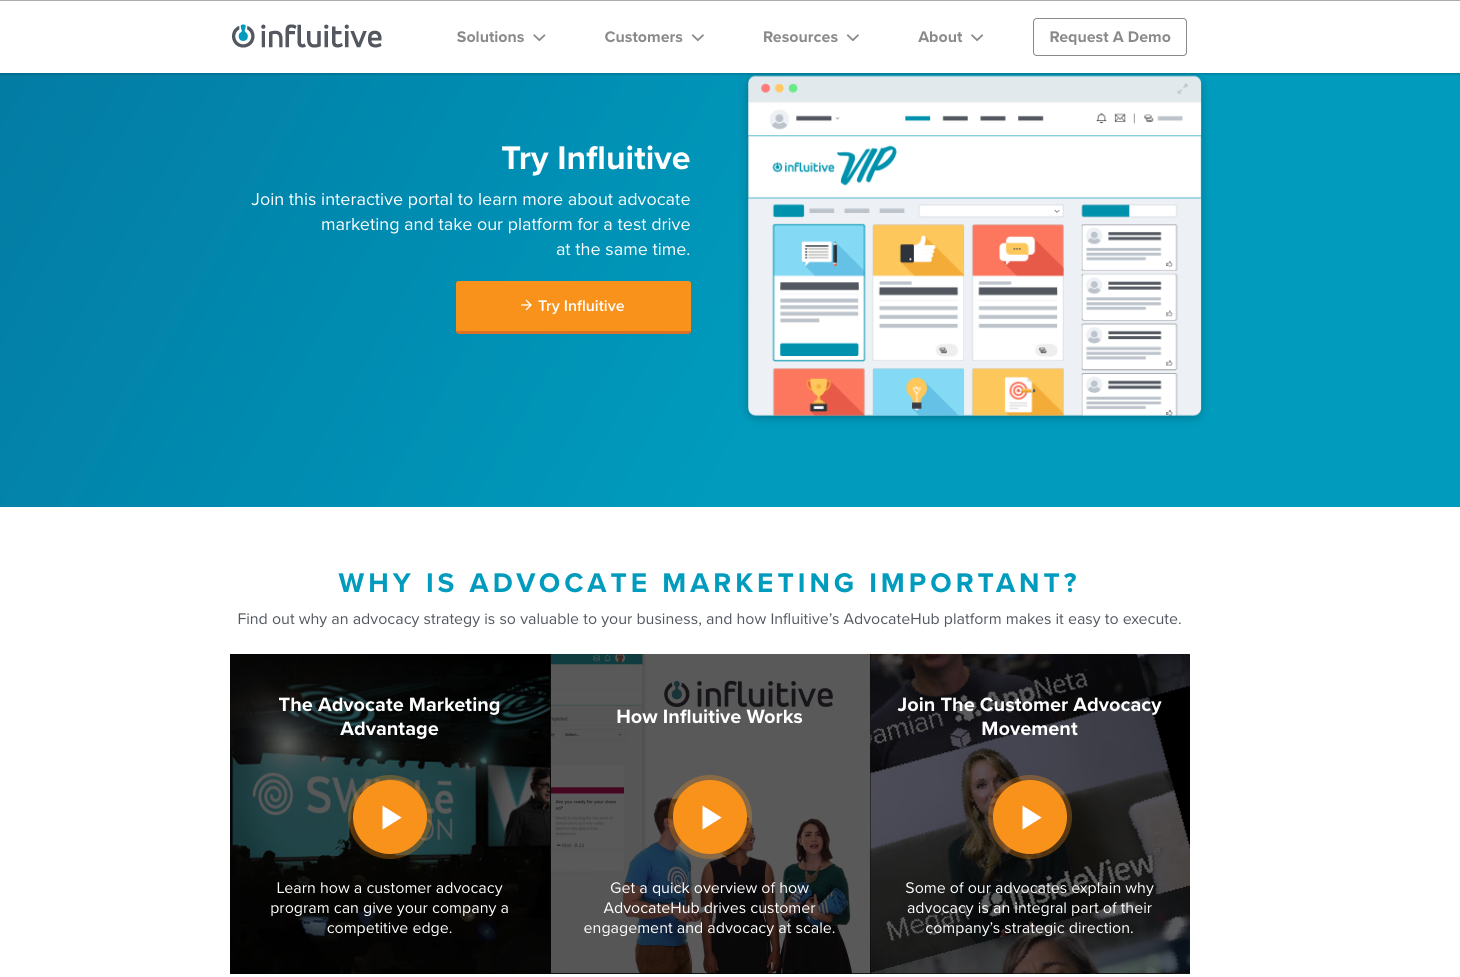 screenshot of Influitive's homepage with video embeds